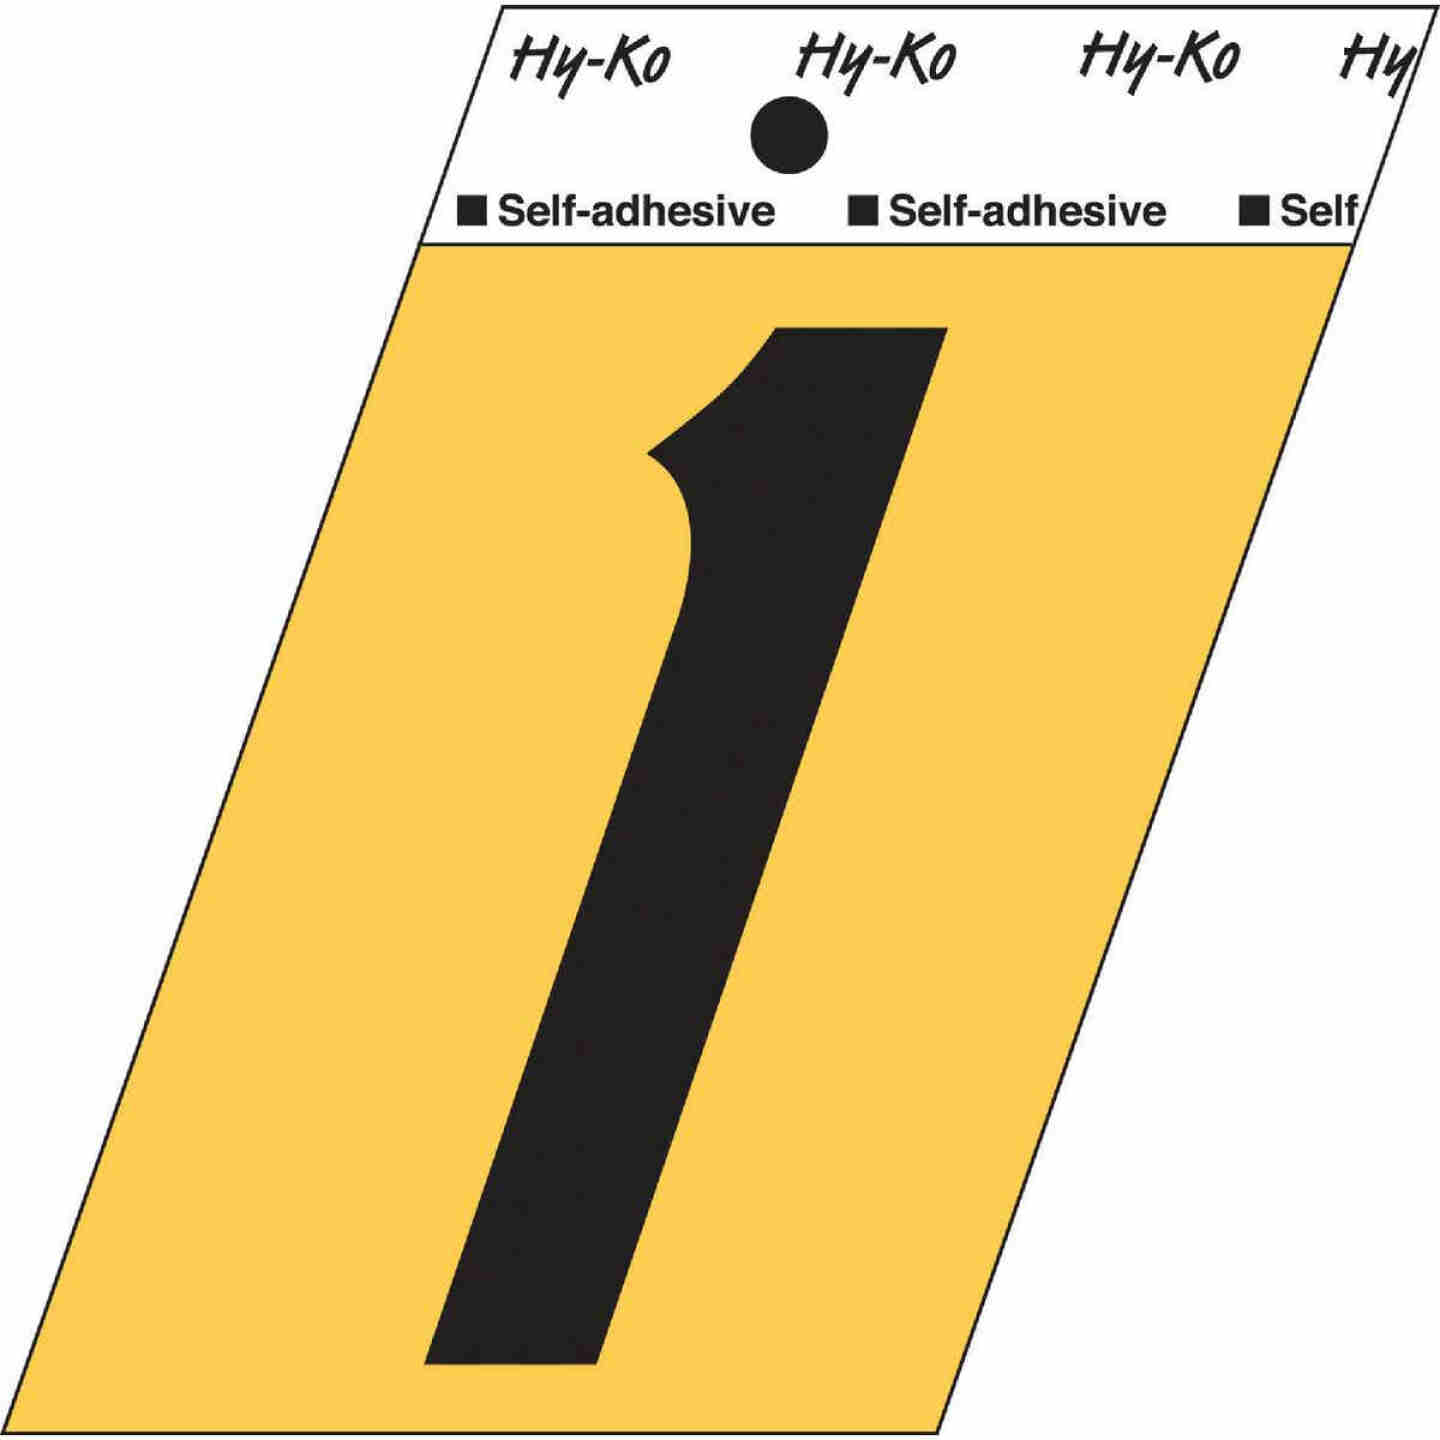 Hy-Ko Aluminum 3-1/2 In. Non-Reflective Adhesive Number One Image 1